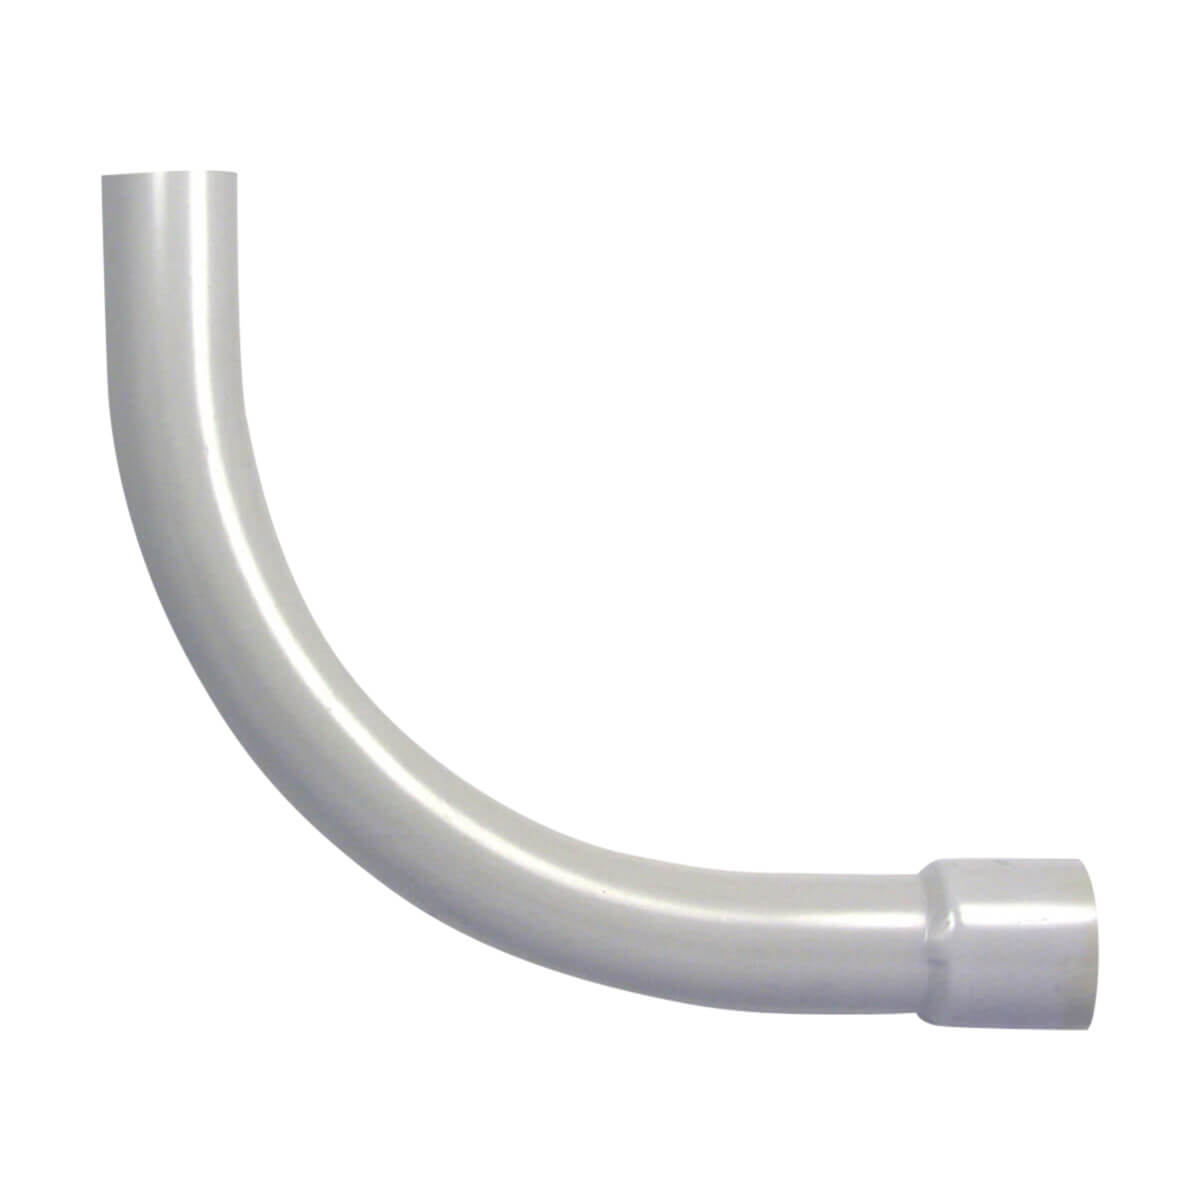 PVC Conduit 90° Elbow - Bell-end - 1-1/4-in